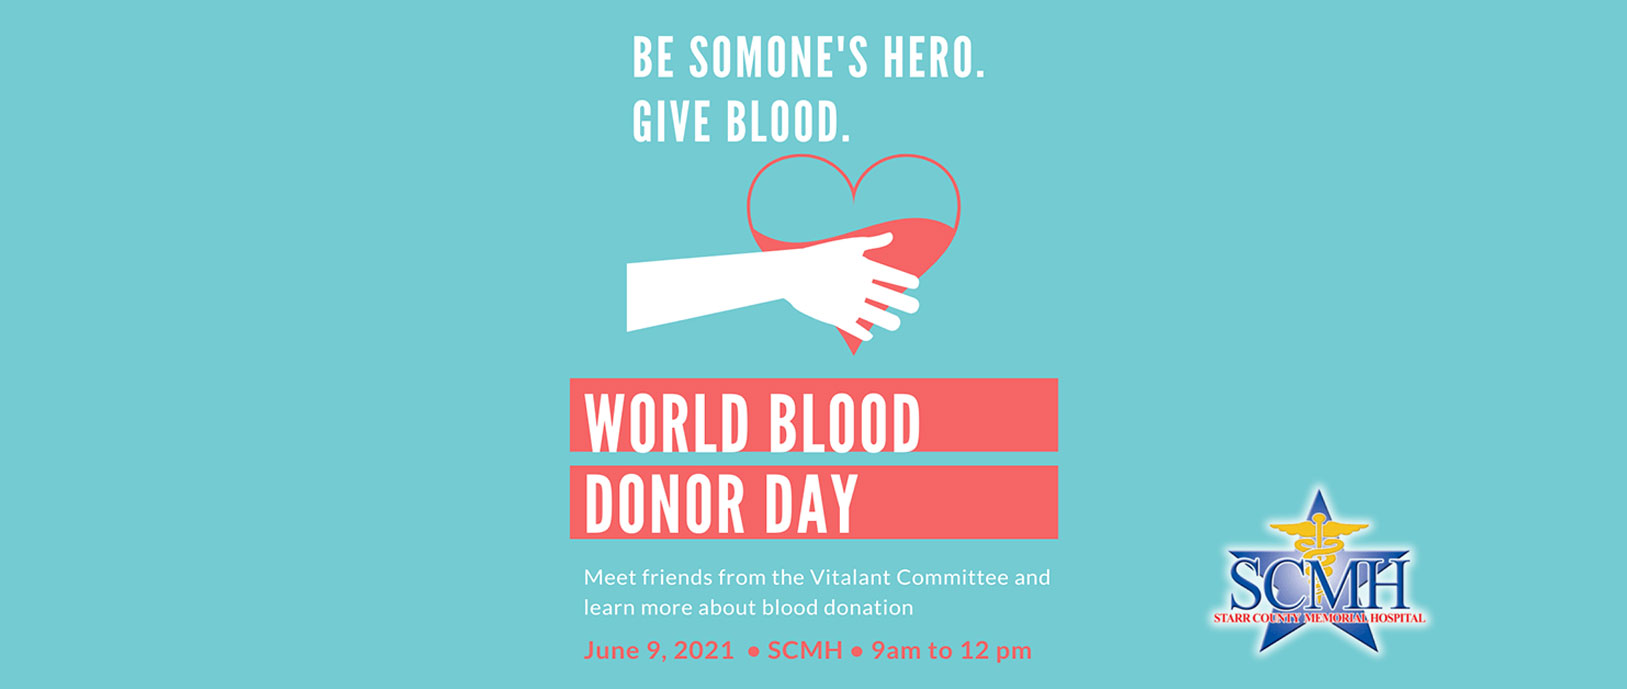 Be Someone's Hero Give Blood  World Blood Donor Day  Meet friends from the Vitalant Committee and learn more about blood donation.  June 9, 2021 • SCMH • 9M to 12pm